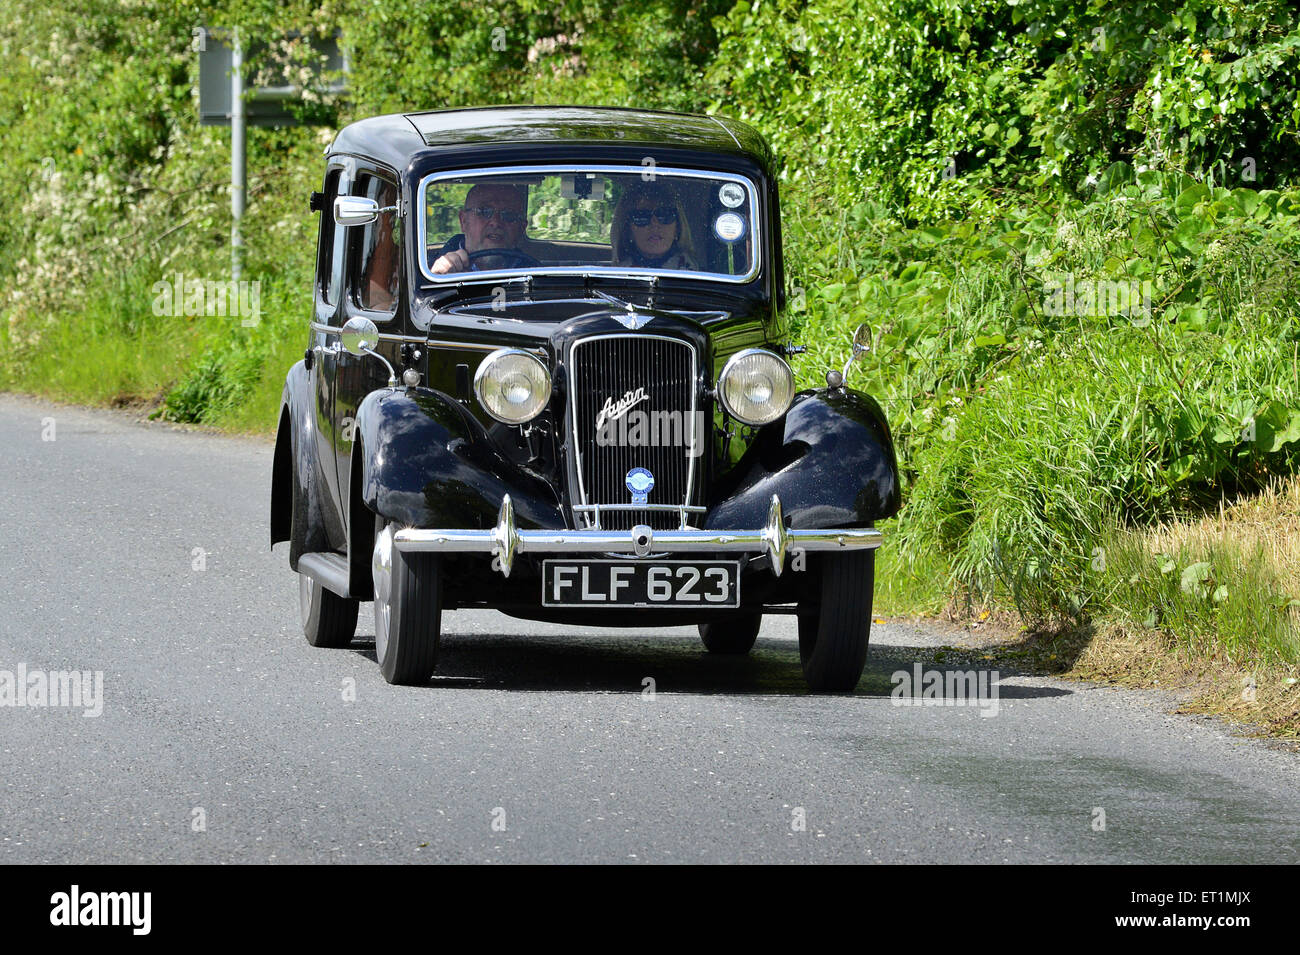 1936 Austin Ten 4-door black saloon vintage car on country road, Burnfoot, County Donegal, Ireland - Stock Image